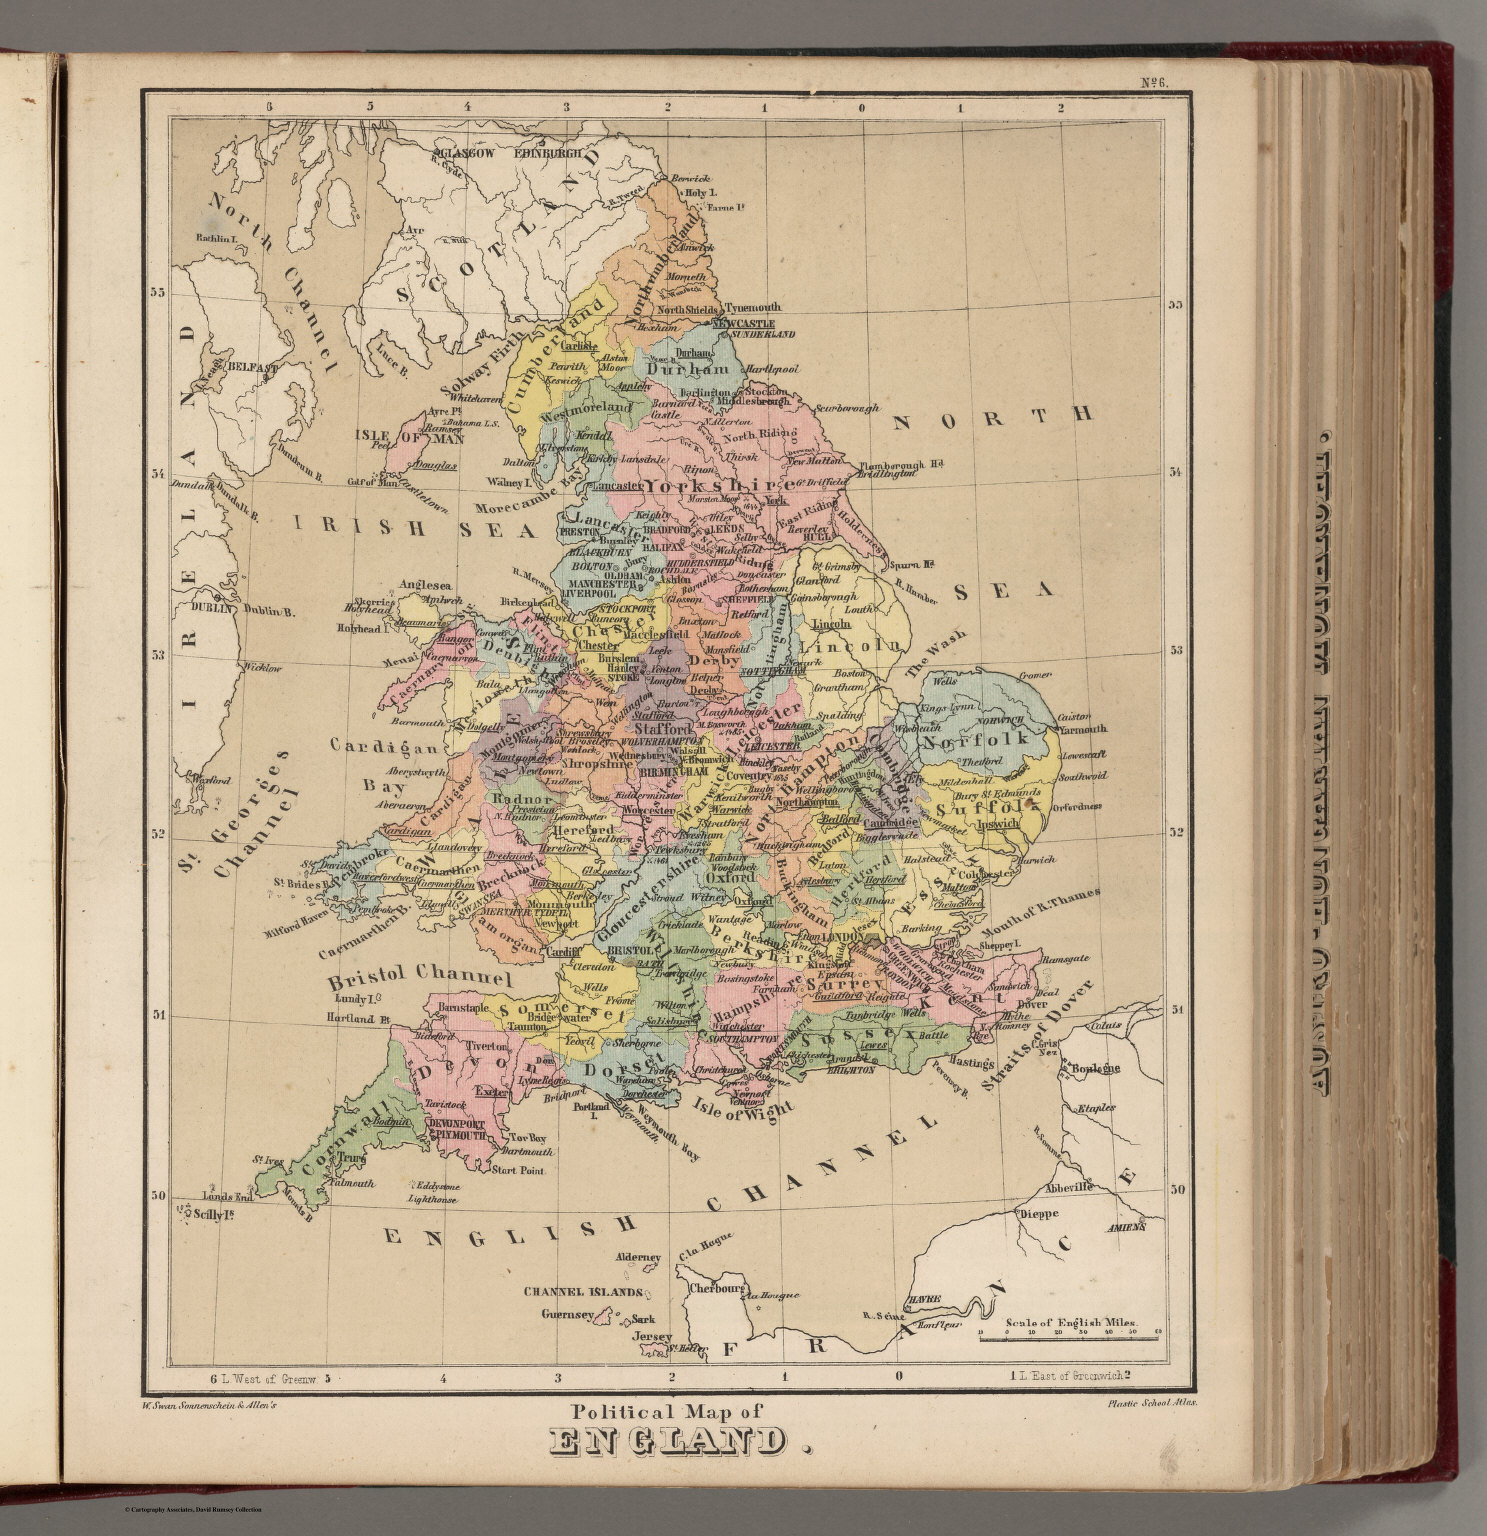 Map Of England Political.Political Map Of England David Rumsey Historical Map Collection